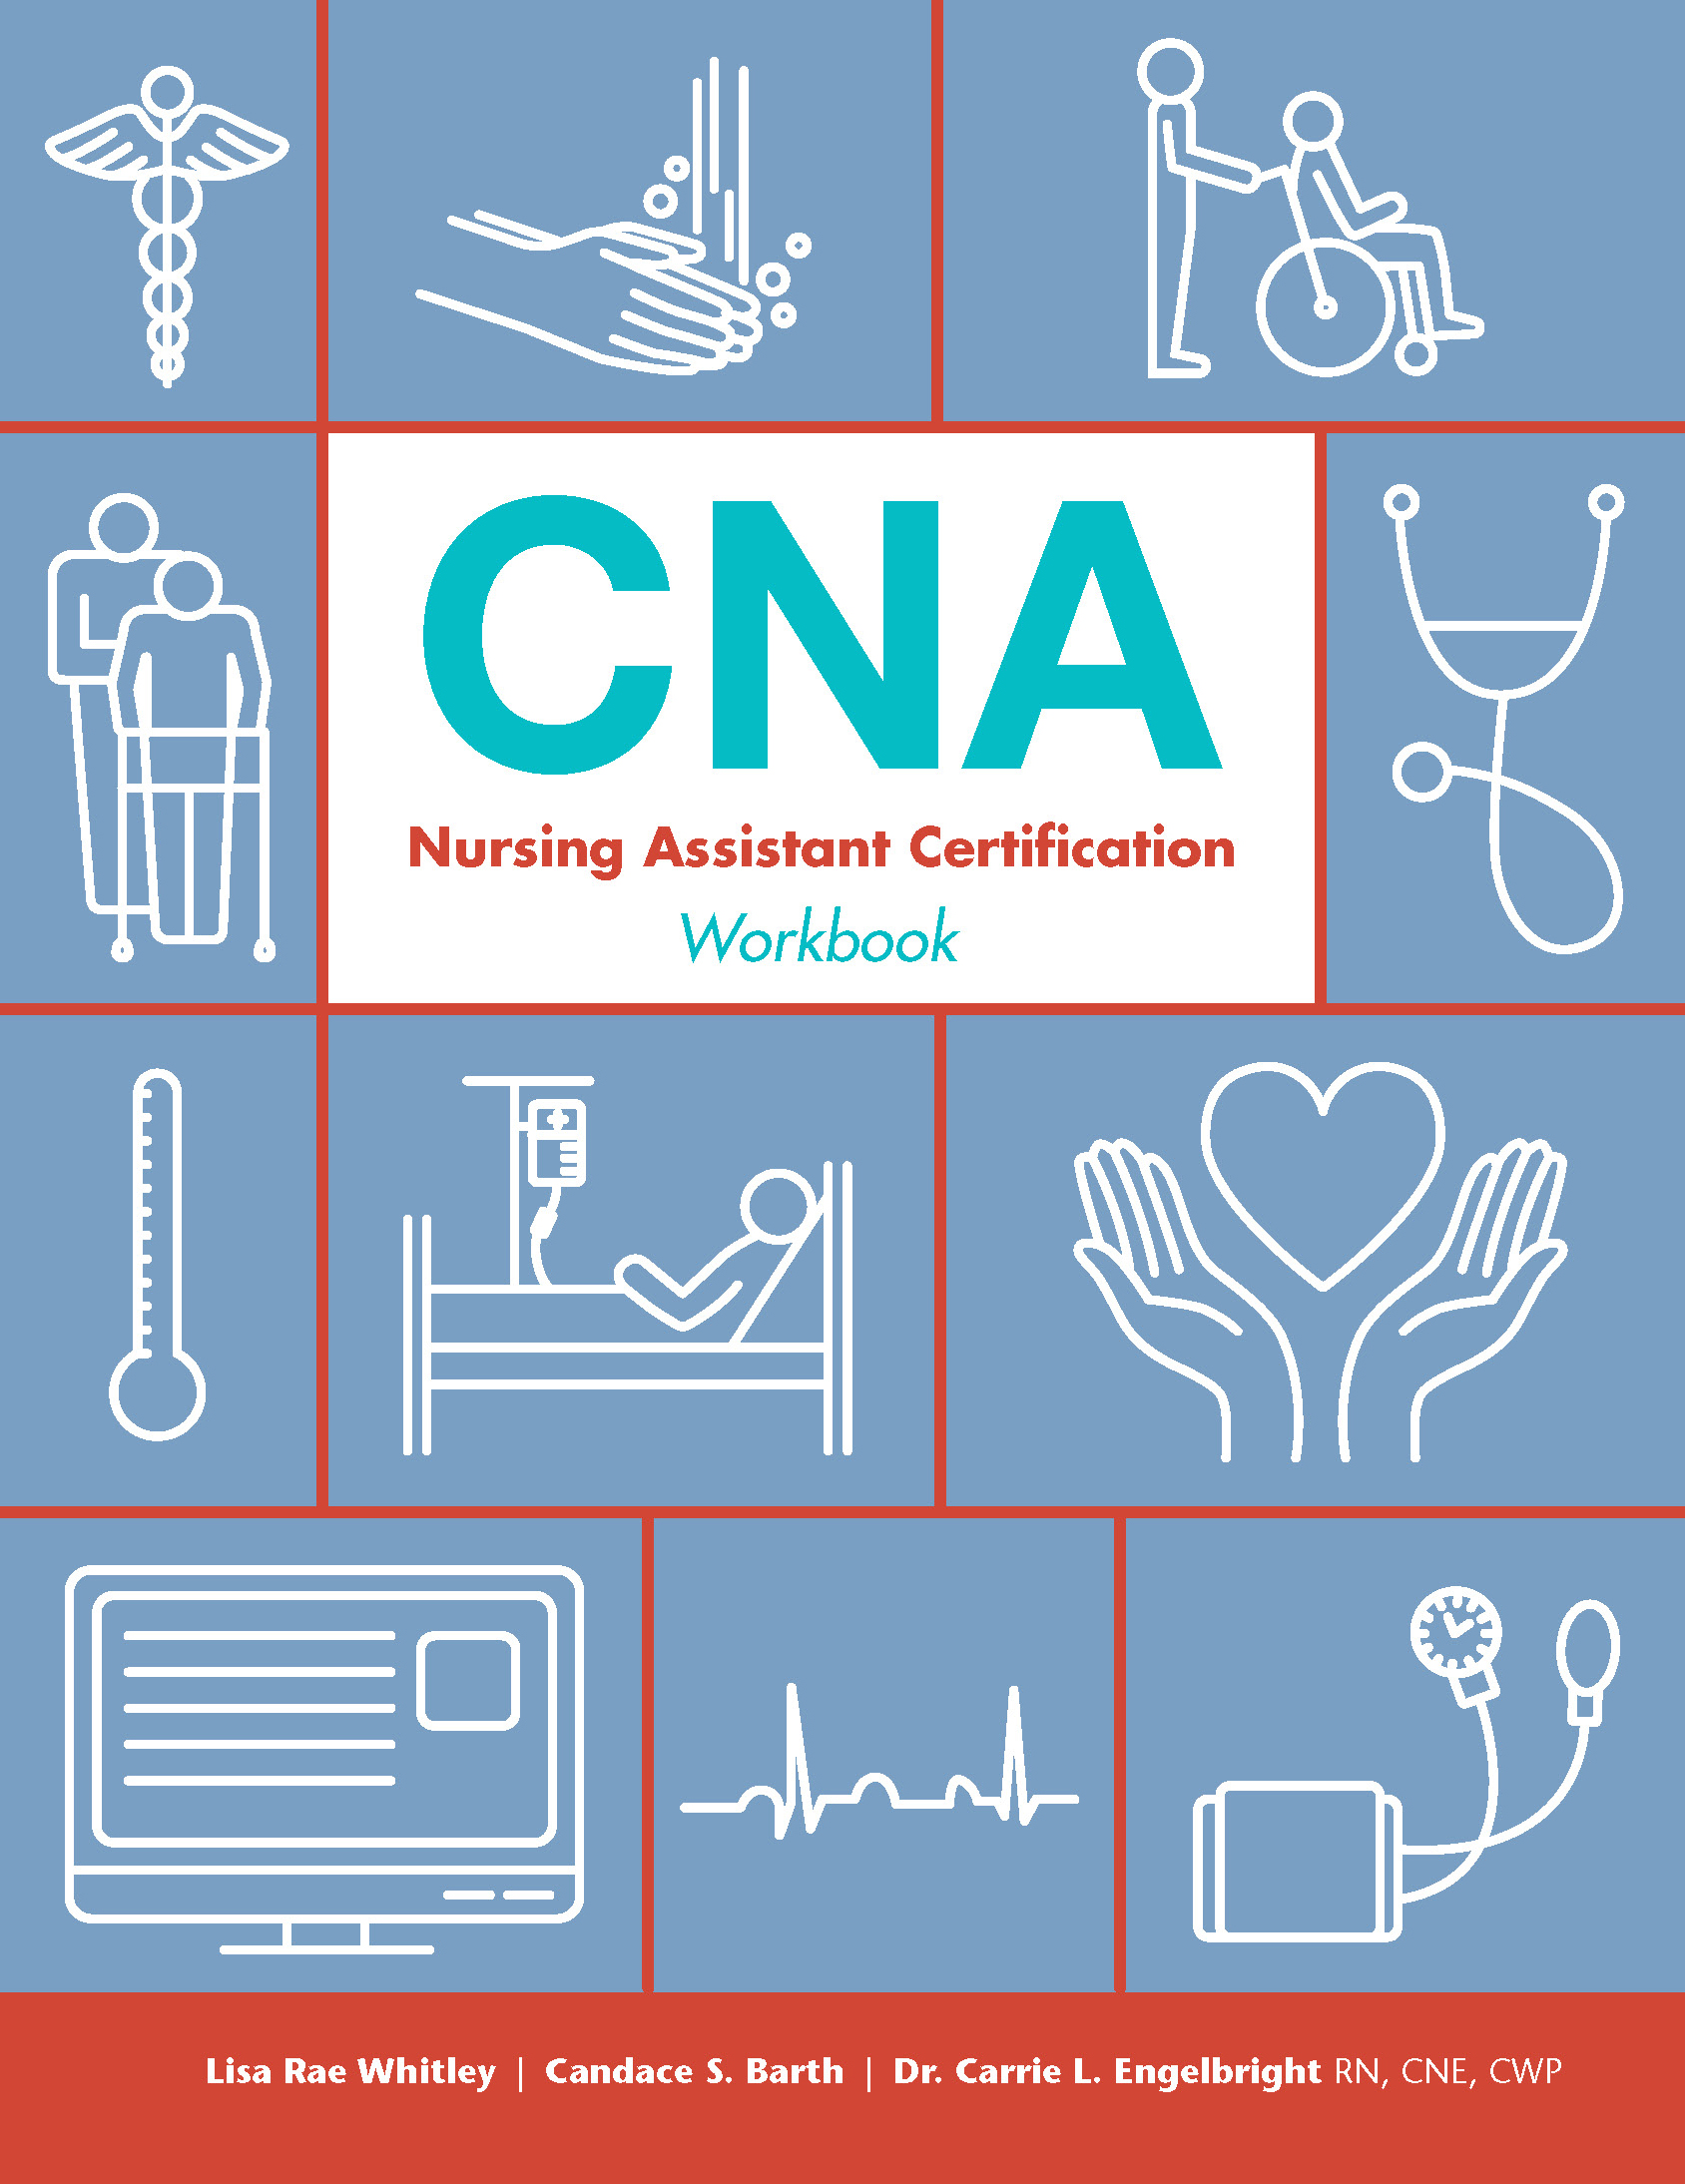 CNA Workbook cover